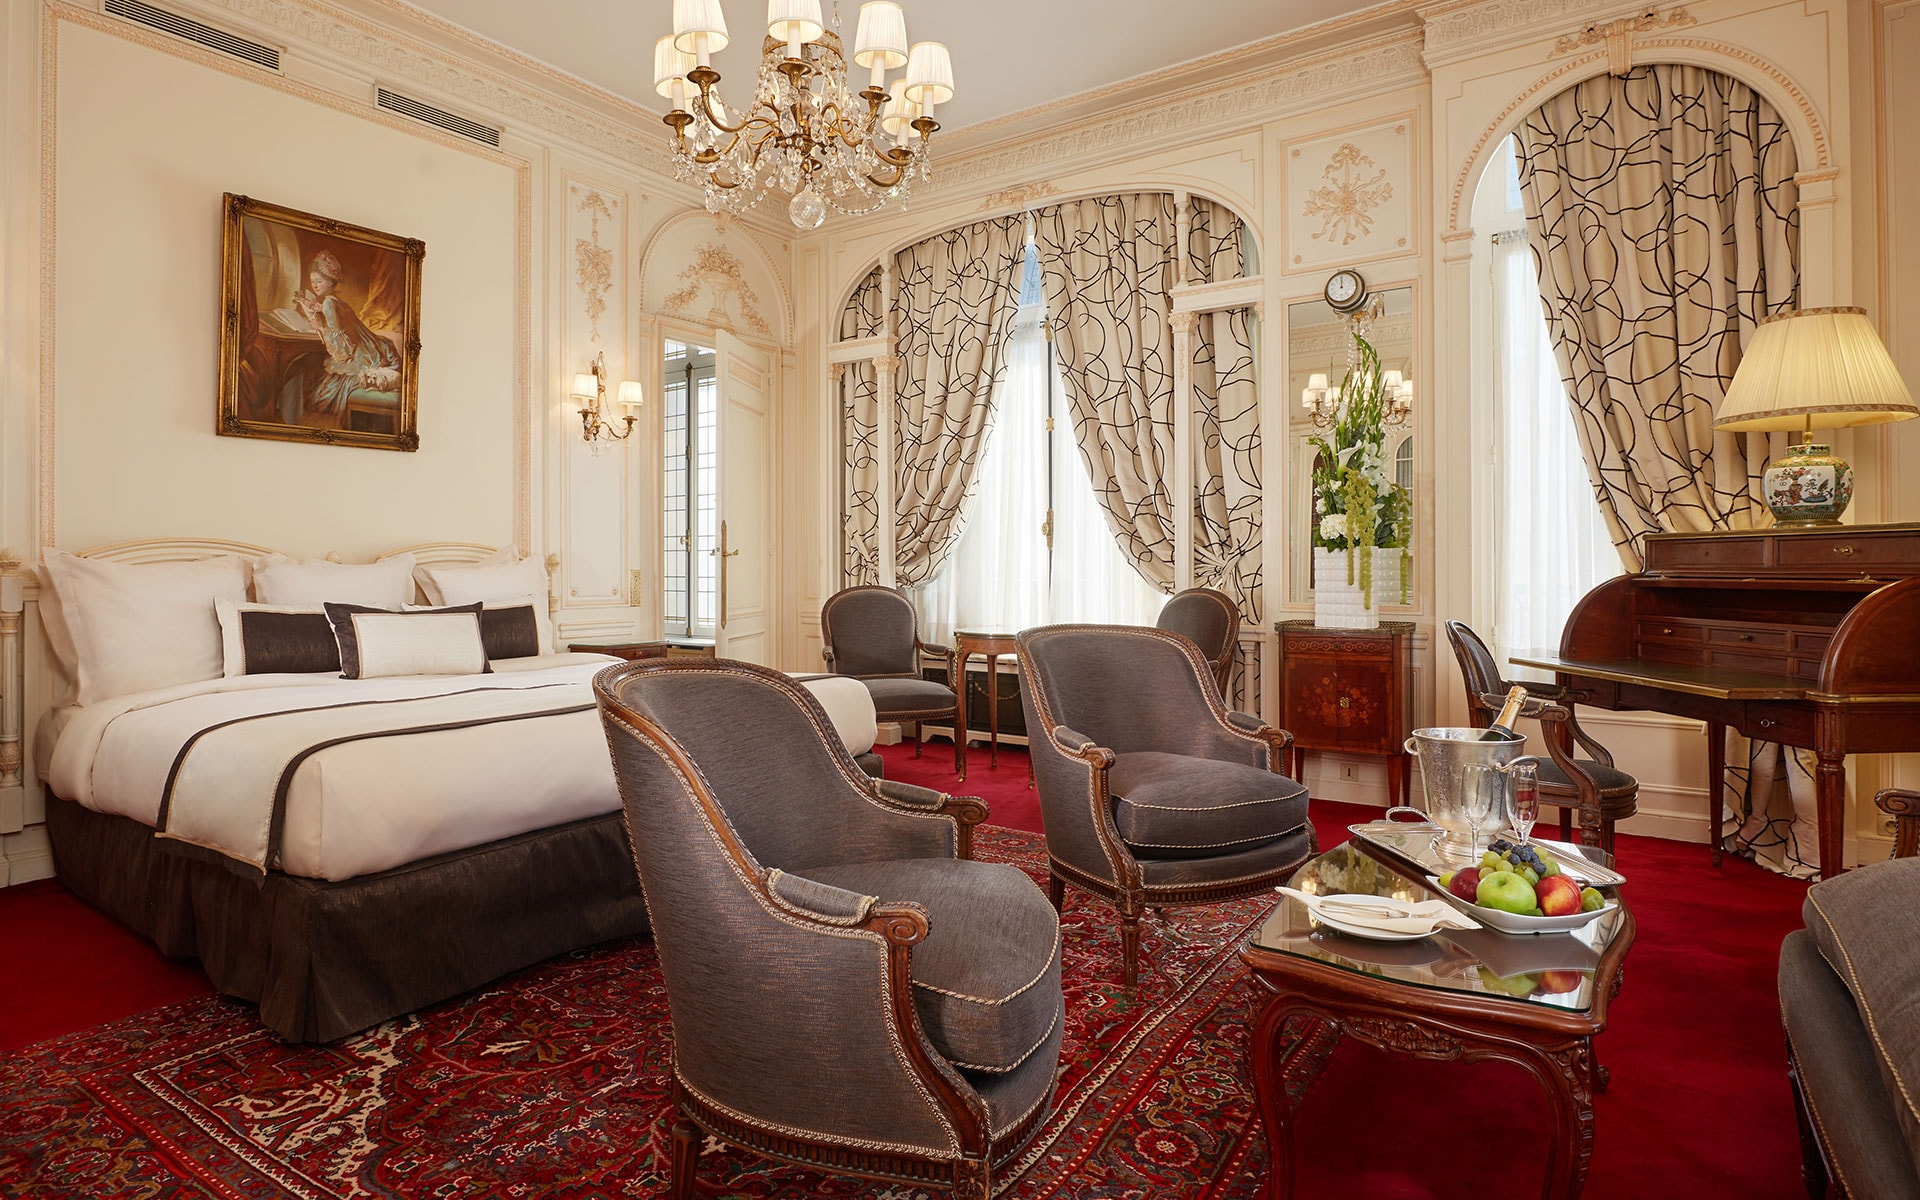 boutique hotels in paris near champs elysees